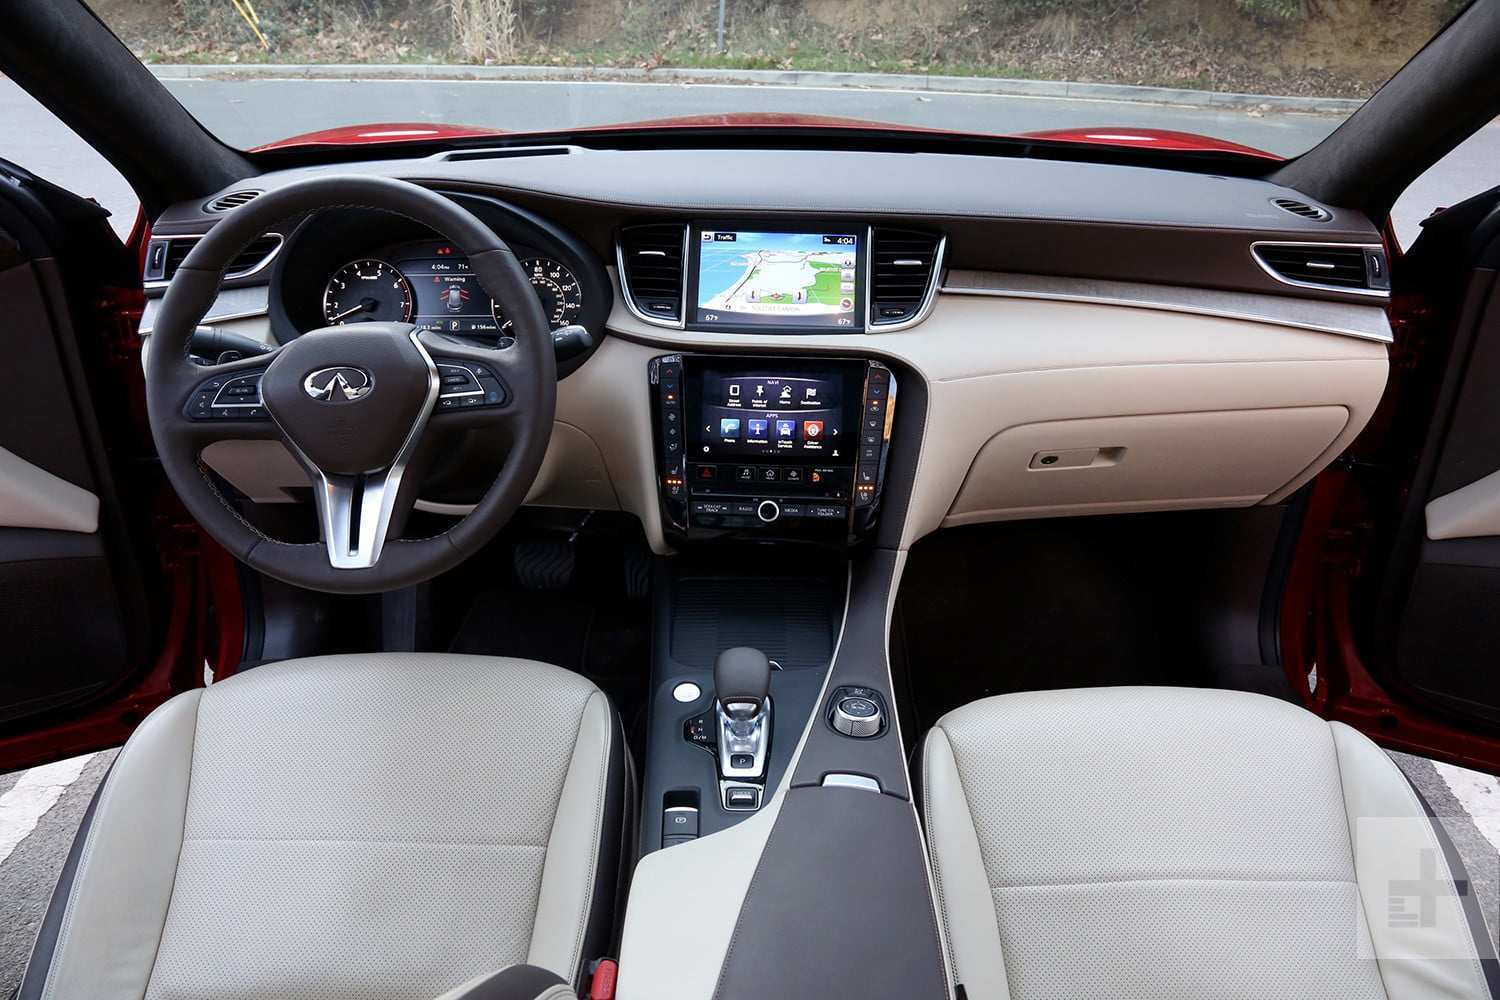 45 Gallery of 2019 Infiniti Qx50 Review Reviews for 2019 Infiniti Qx50 Review